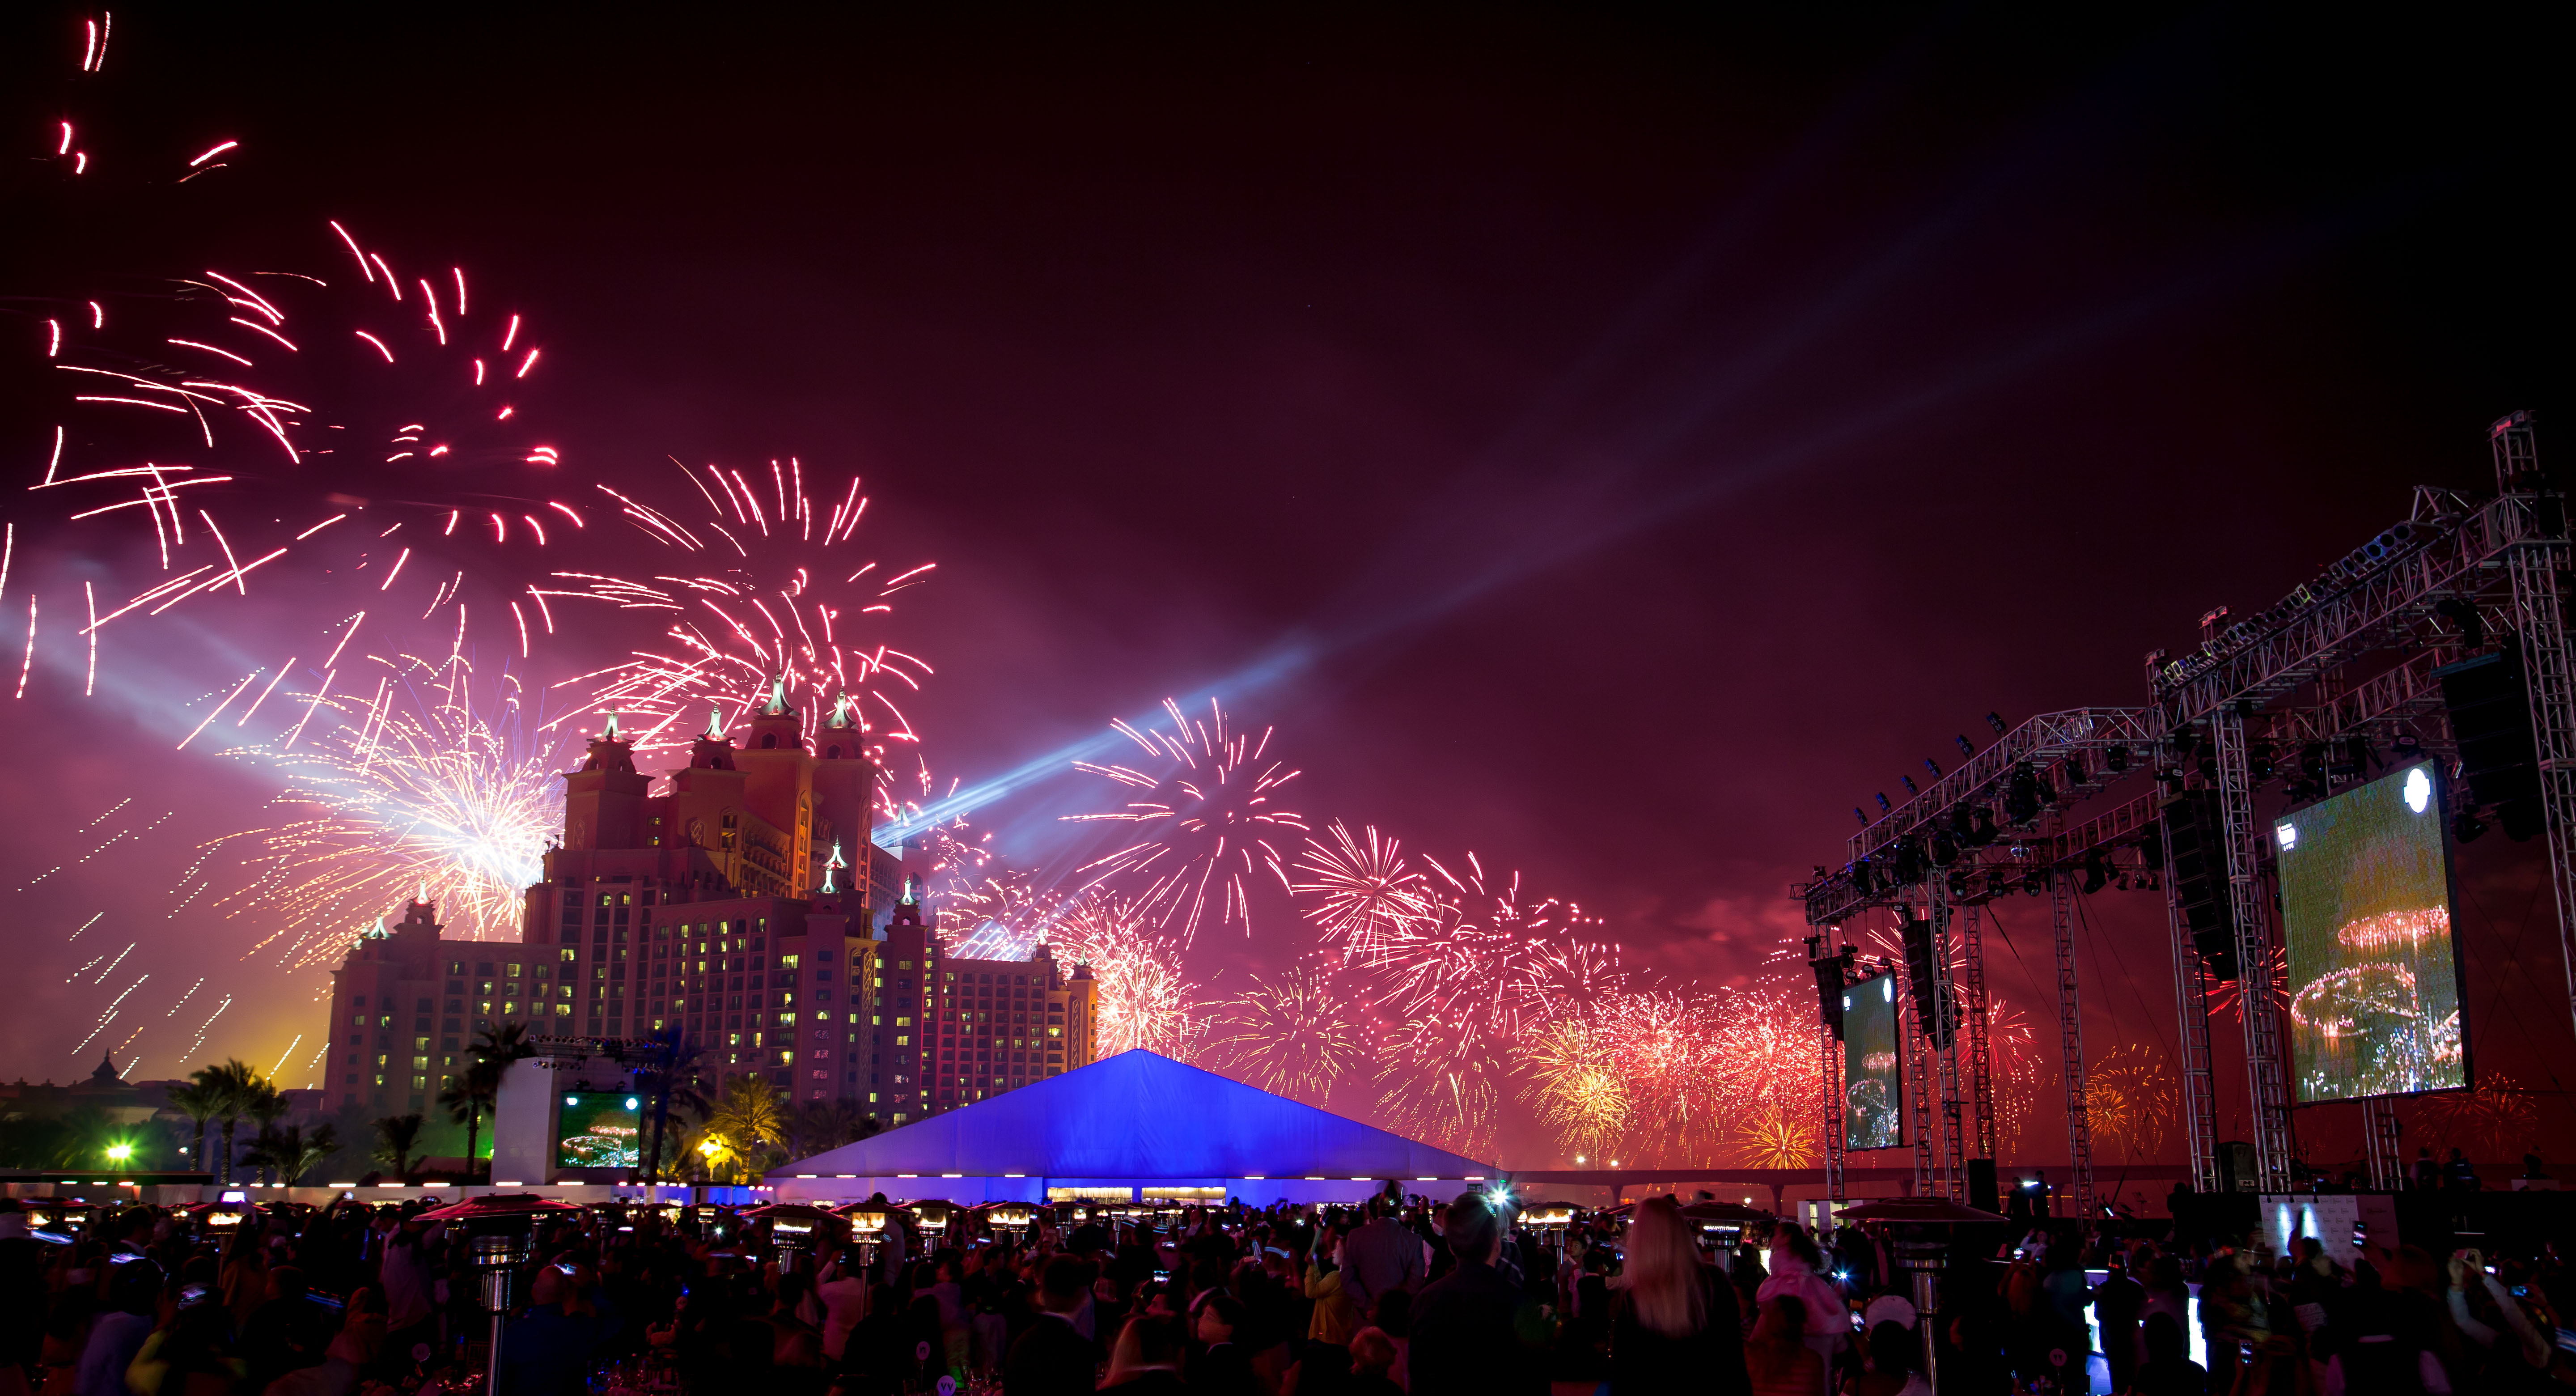 Guests at the New Years Eve Gala dinner at Atlantis The Palm were treated to spectacular record breaking fireworks (Photo: Business Wire)